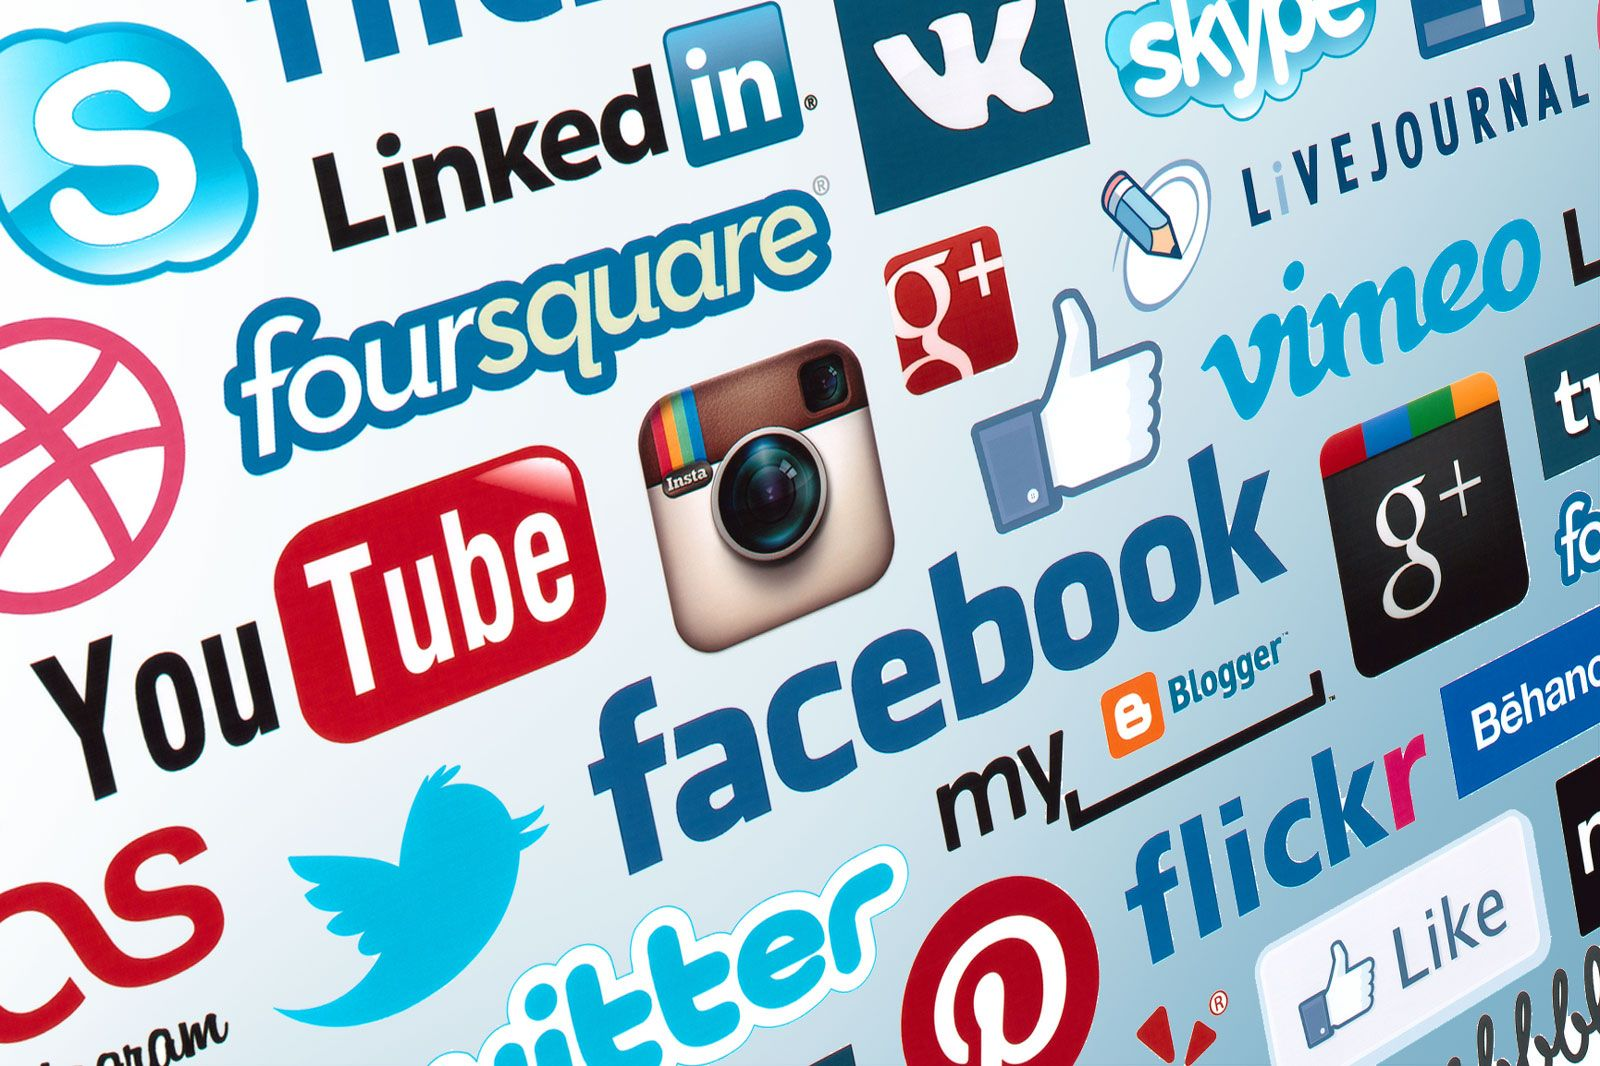 Social Media Marketing: Your Options And What's Best For You